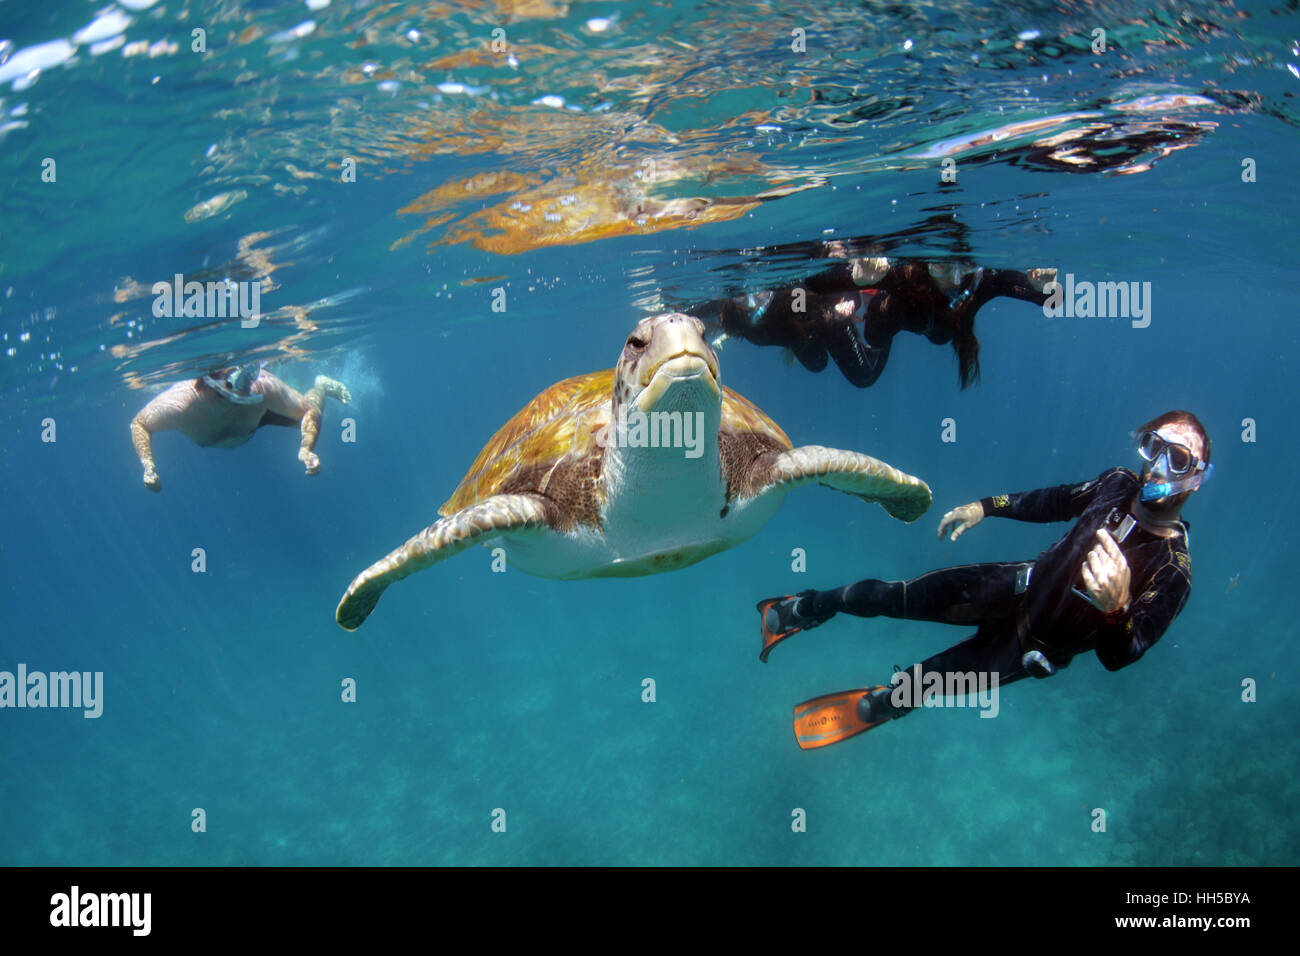 Swimming with a green turtle,Costa Adeje, Tenerife - Stock Image